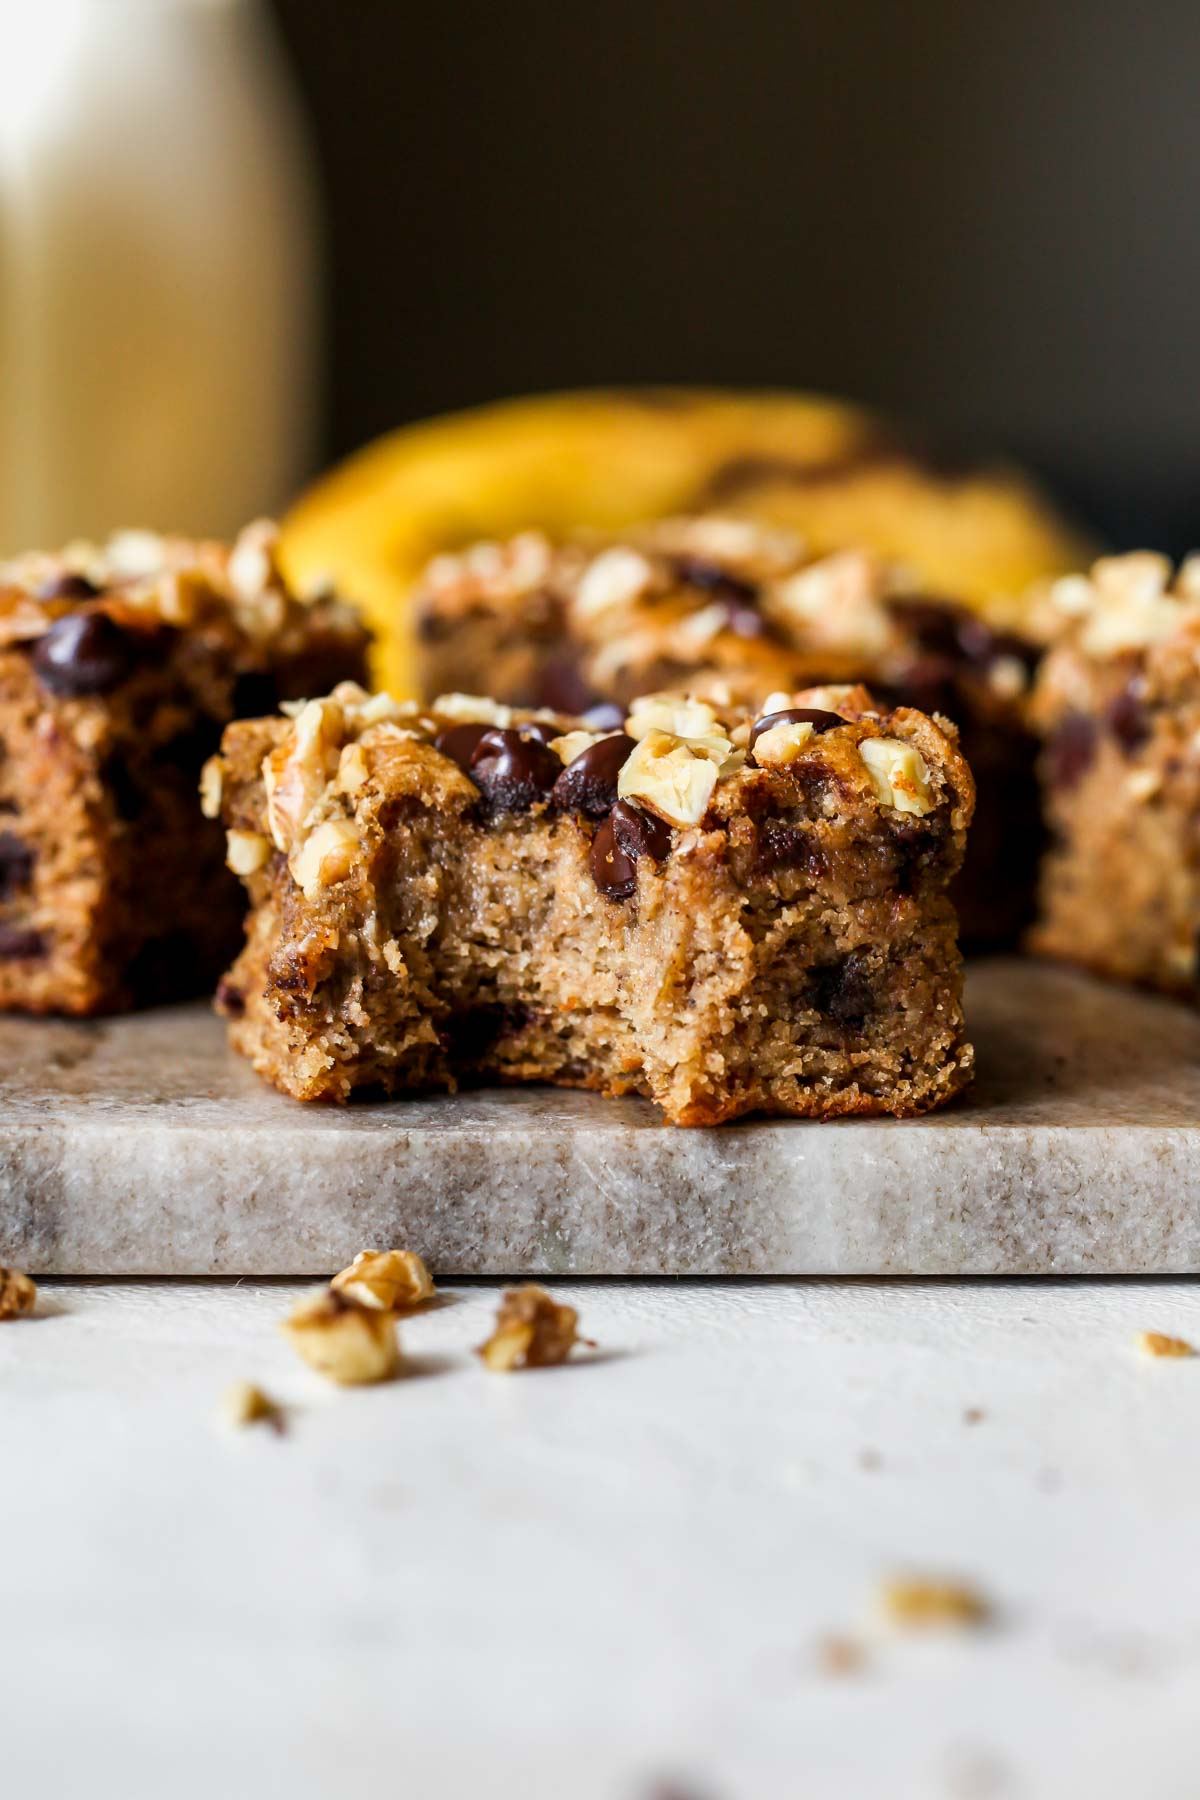 One banana bread bar with a bite taken out to show insides